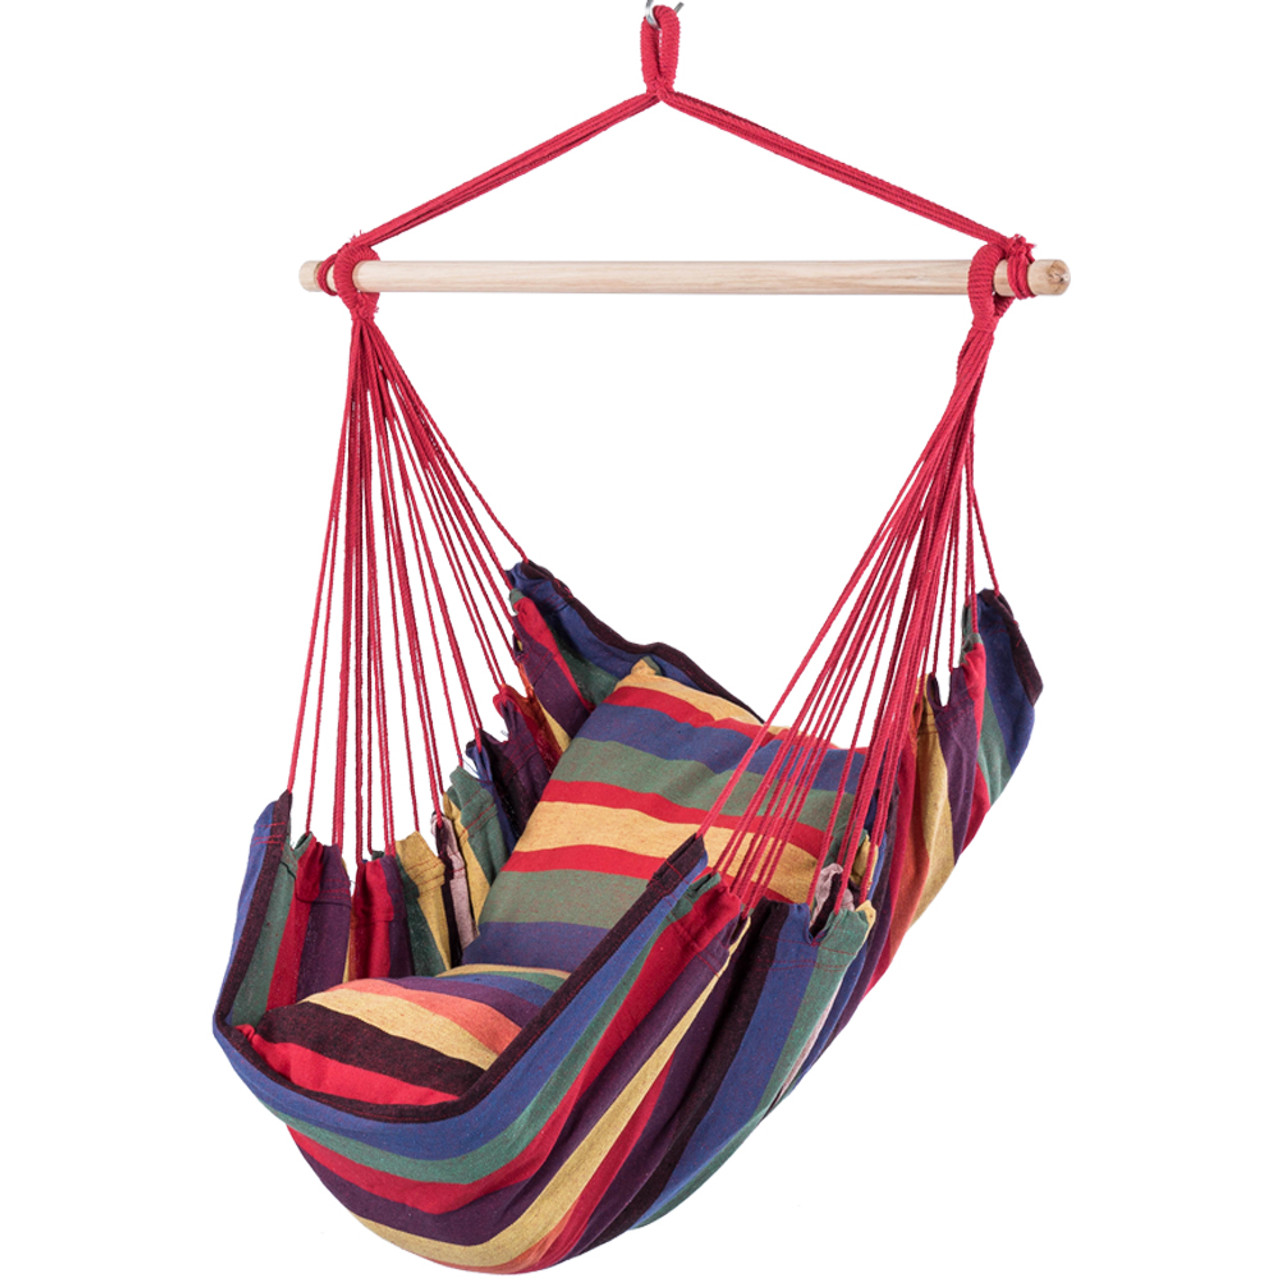 Lazy Daze Hammocks Hanging Rope Hammock Chair Swing Seat With 2 Seat Cushions Weight Capacity 300